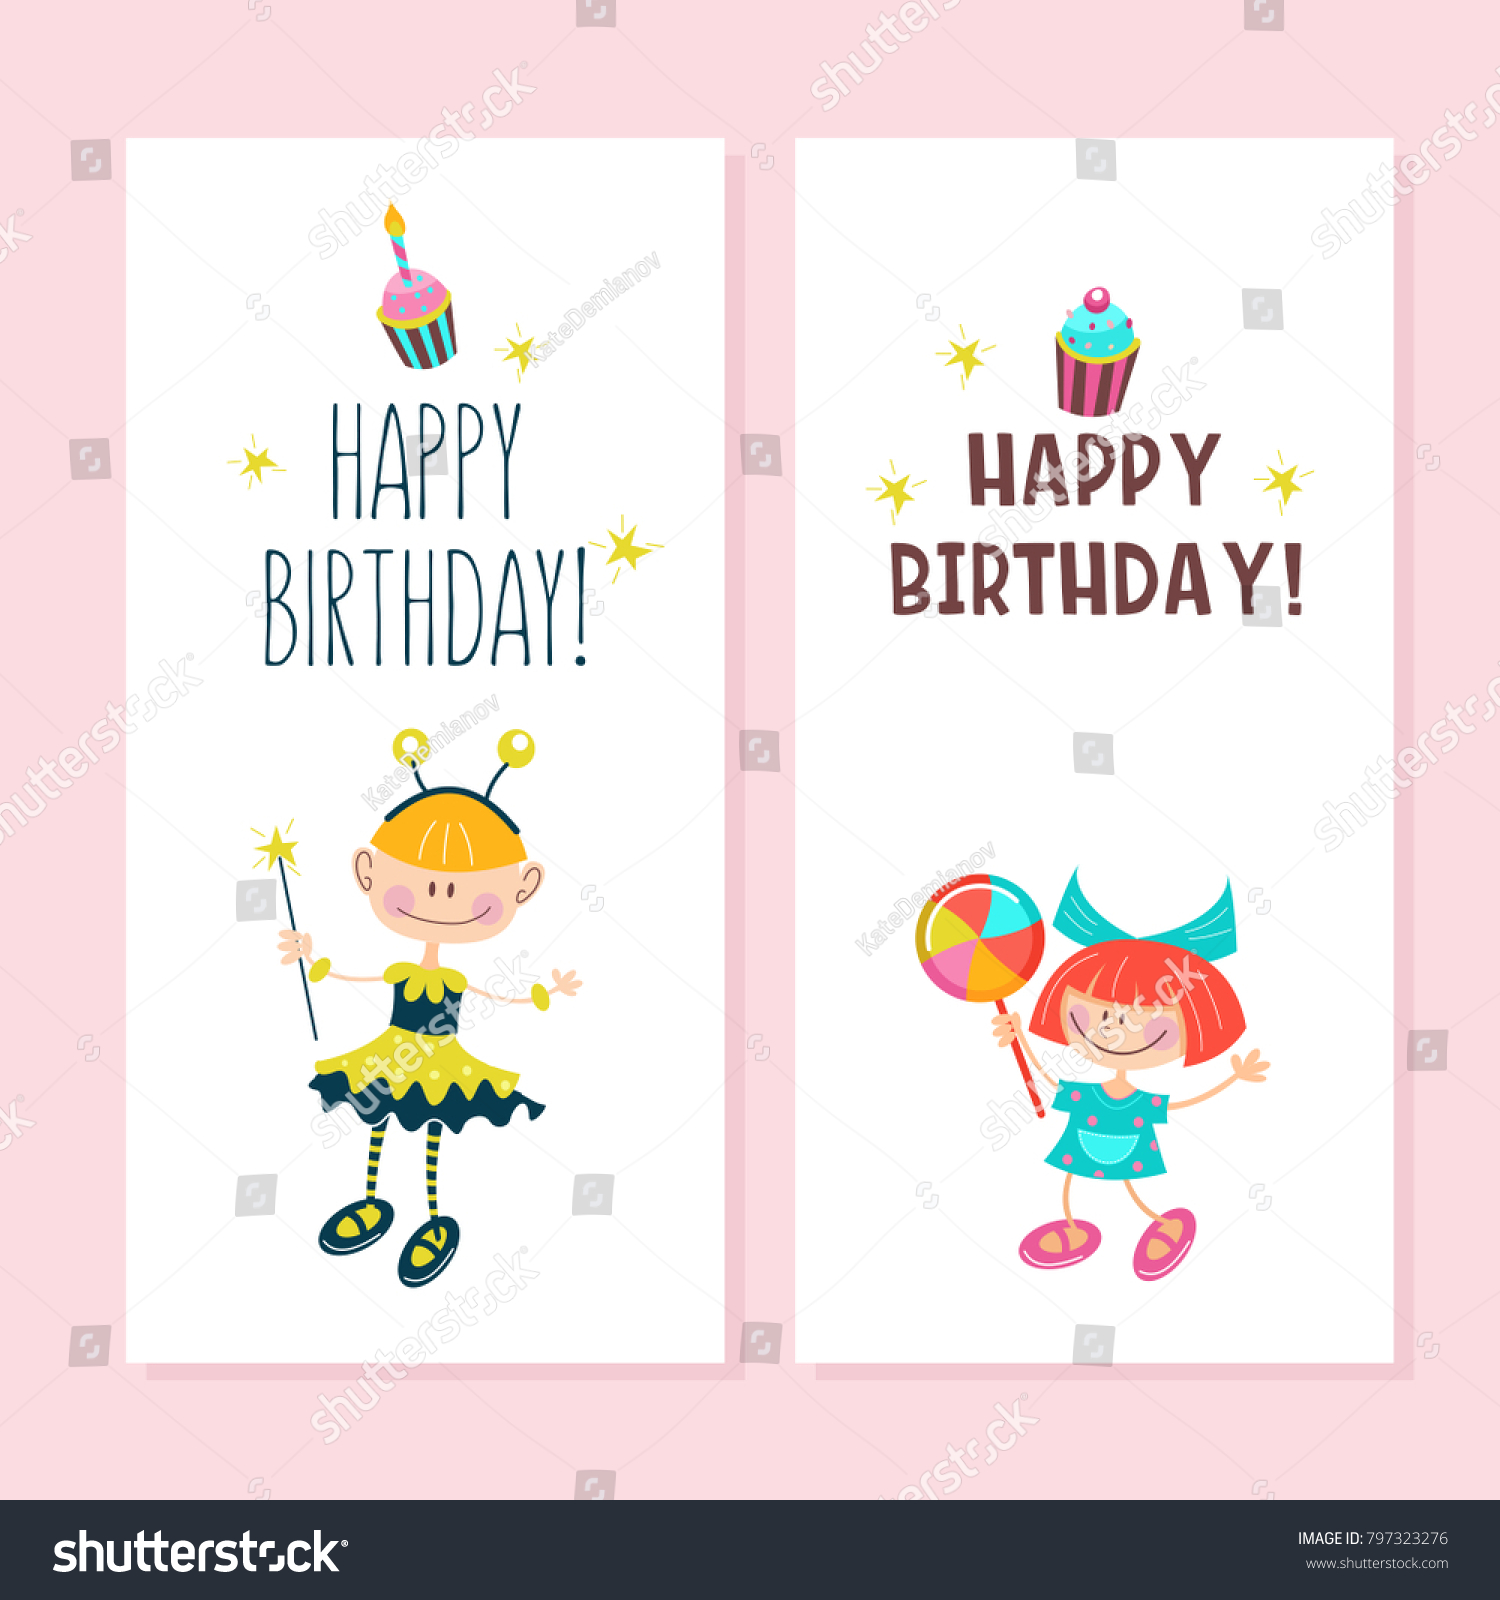 Happy birthday greeting cards cute girls stock vector 797323276 happy birthday greeting cards cute girls stock vector 797323276 shutterstock bookmarktalkfo Image collections